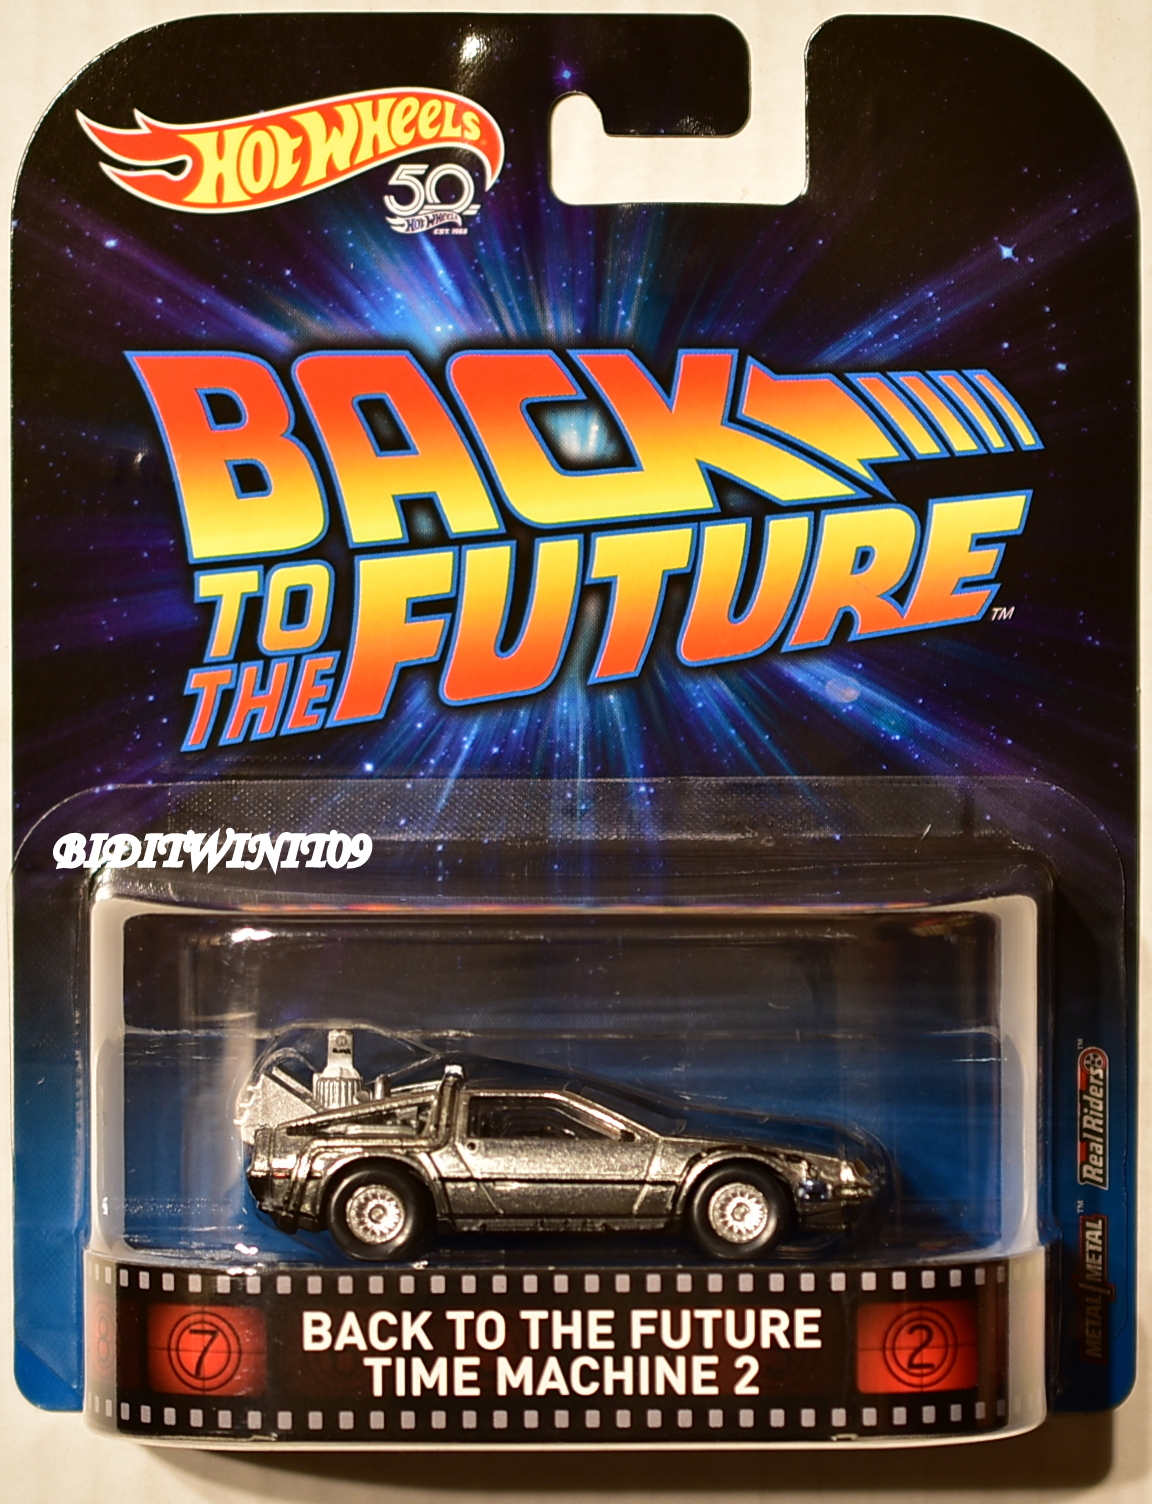 HOT WHEELS 2018 50 YEARS RETRO ENTERTAINMENT BACK TO THE FUTURE TIME MACHINE 2